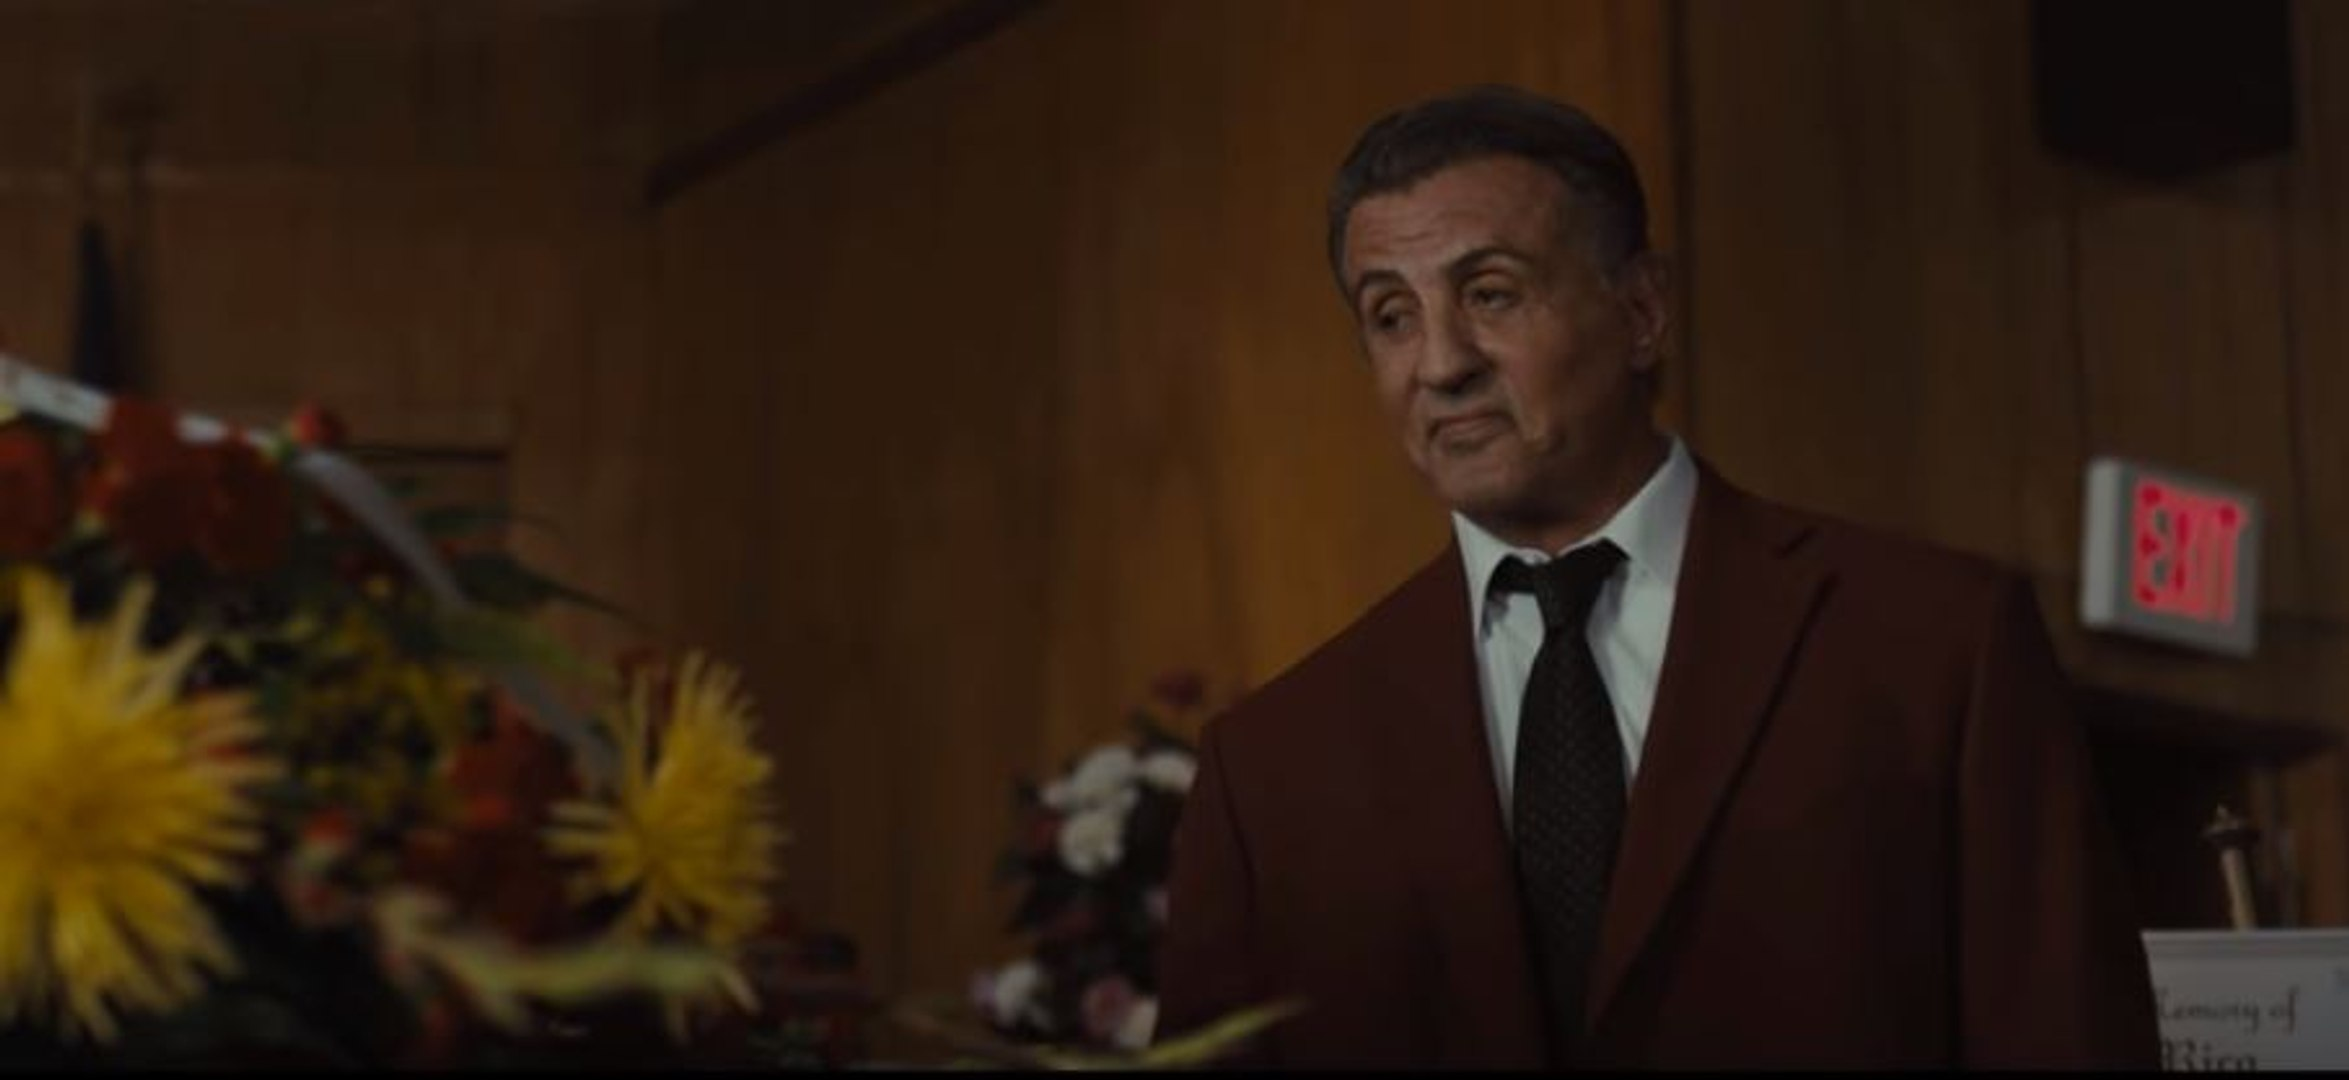 CREED II Rocky's eulogy RIP spider rico - Sylvester Stallone deleted scene